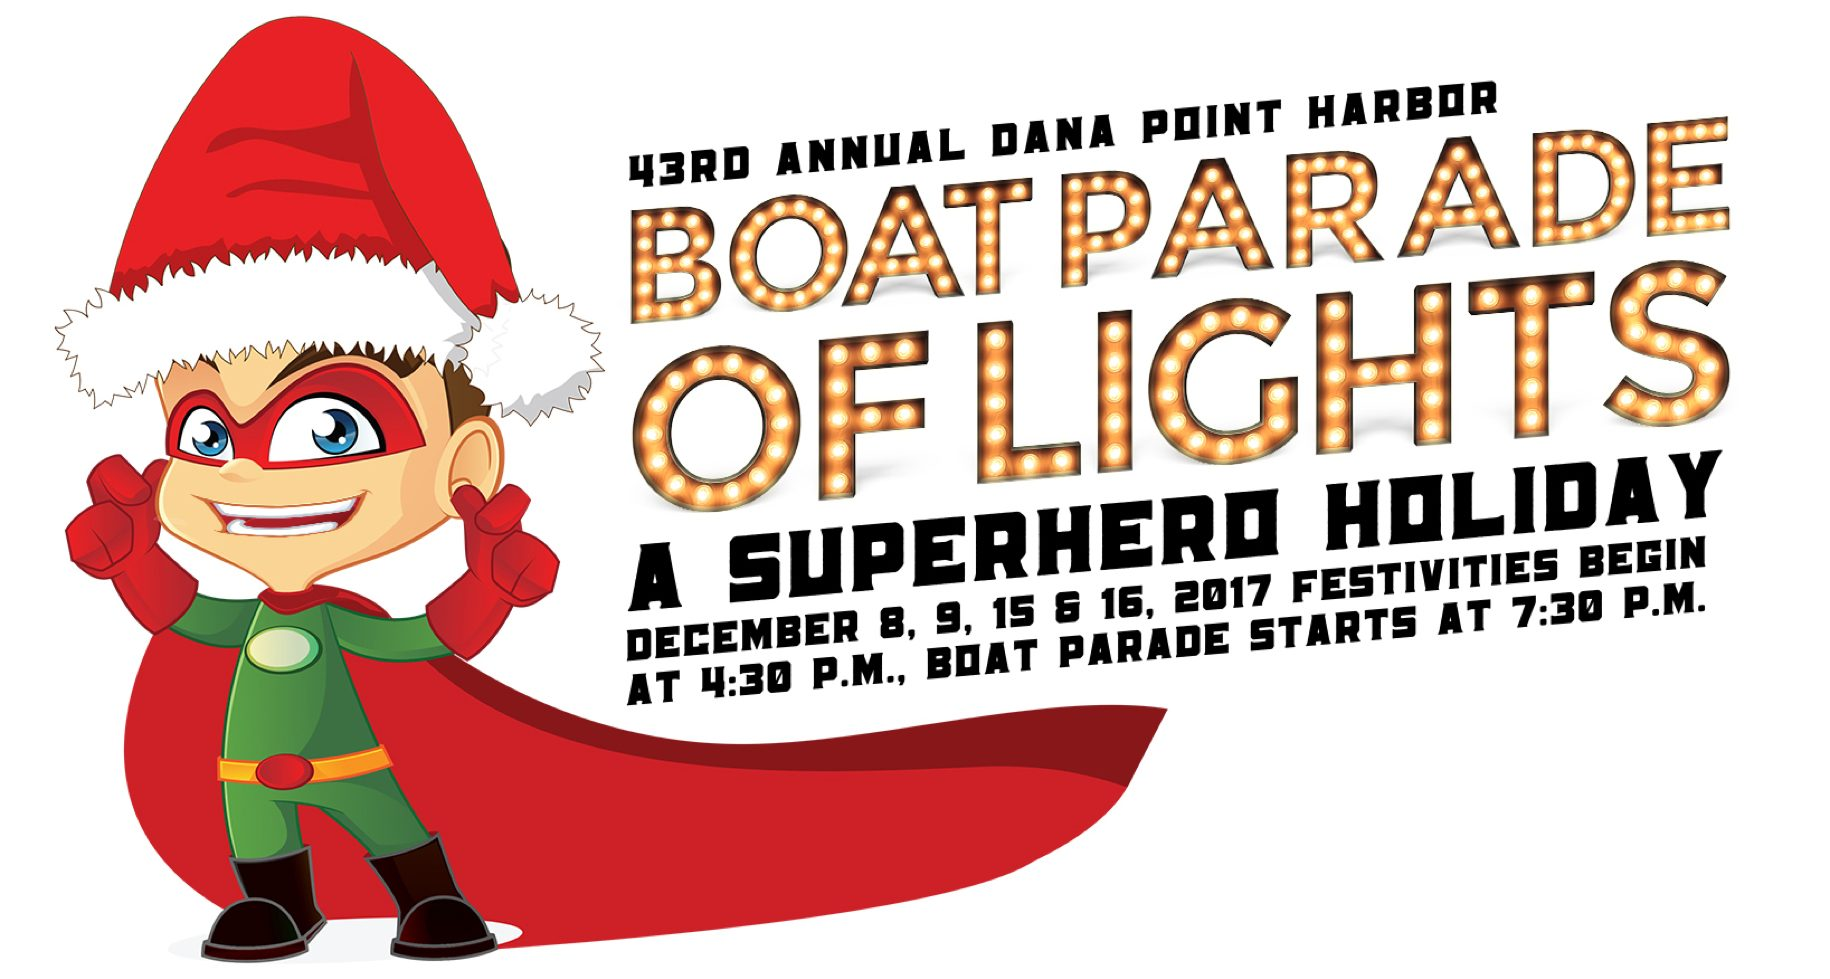 43rd Annual